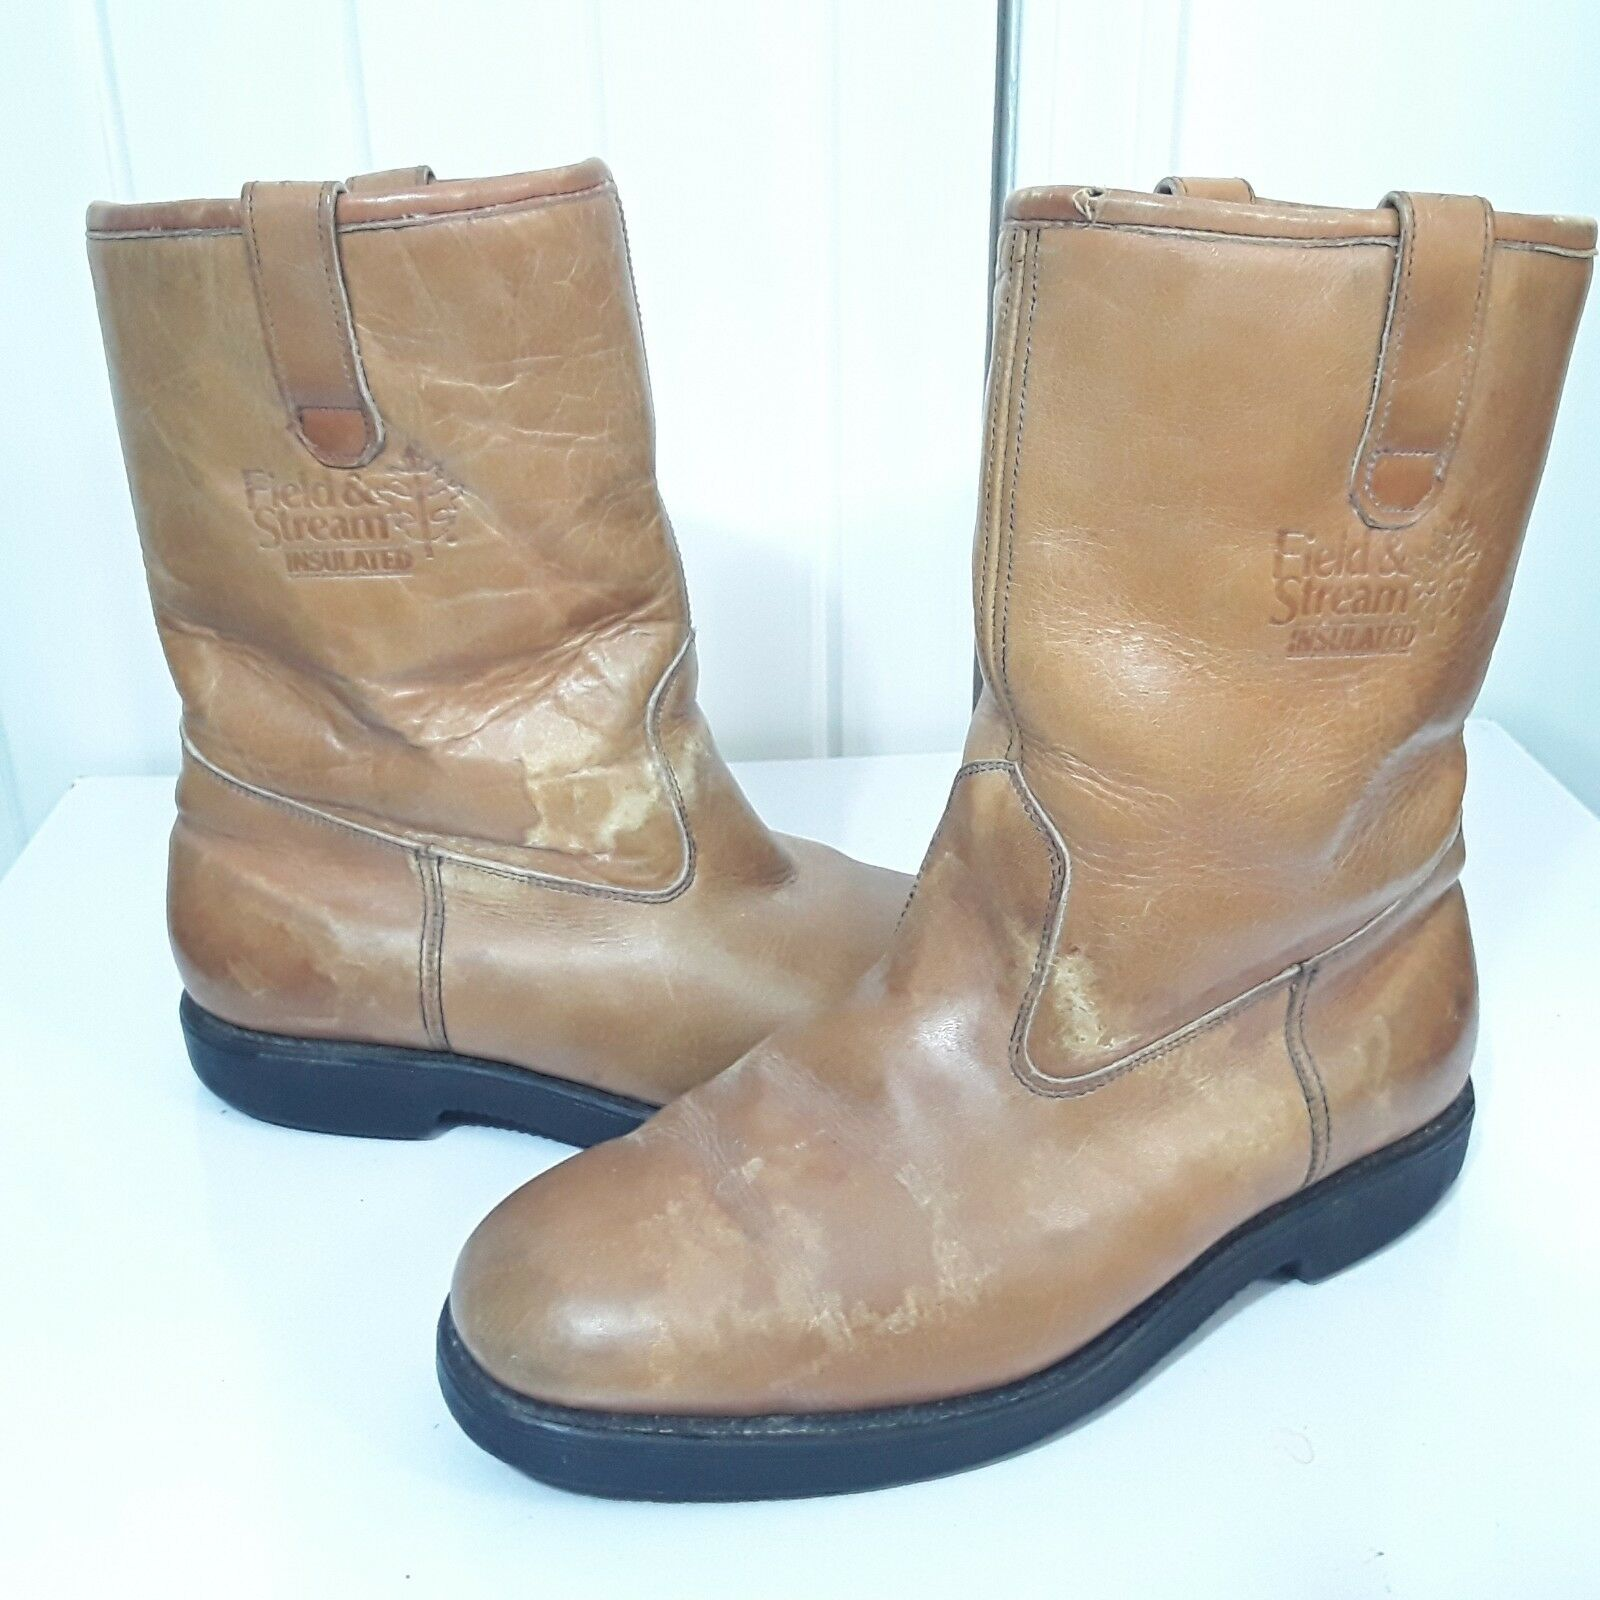 VTG USA MASON FIELD & STREAM MENS BROWN LEATHER INSULATED BOOTS SZ 8.5 EE